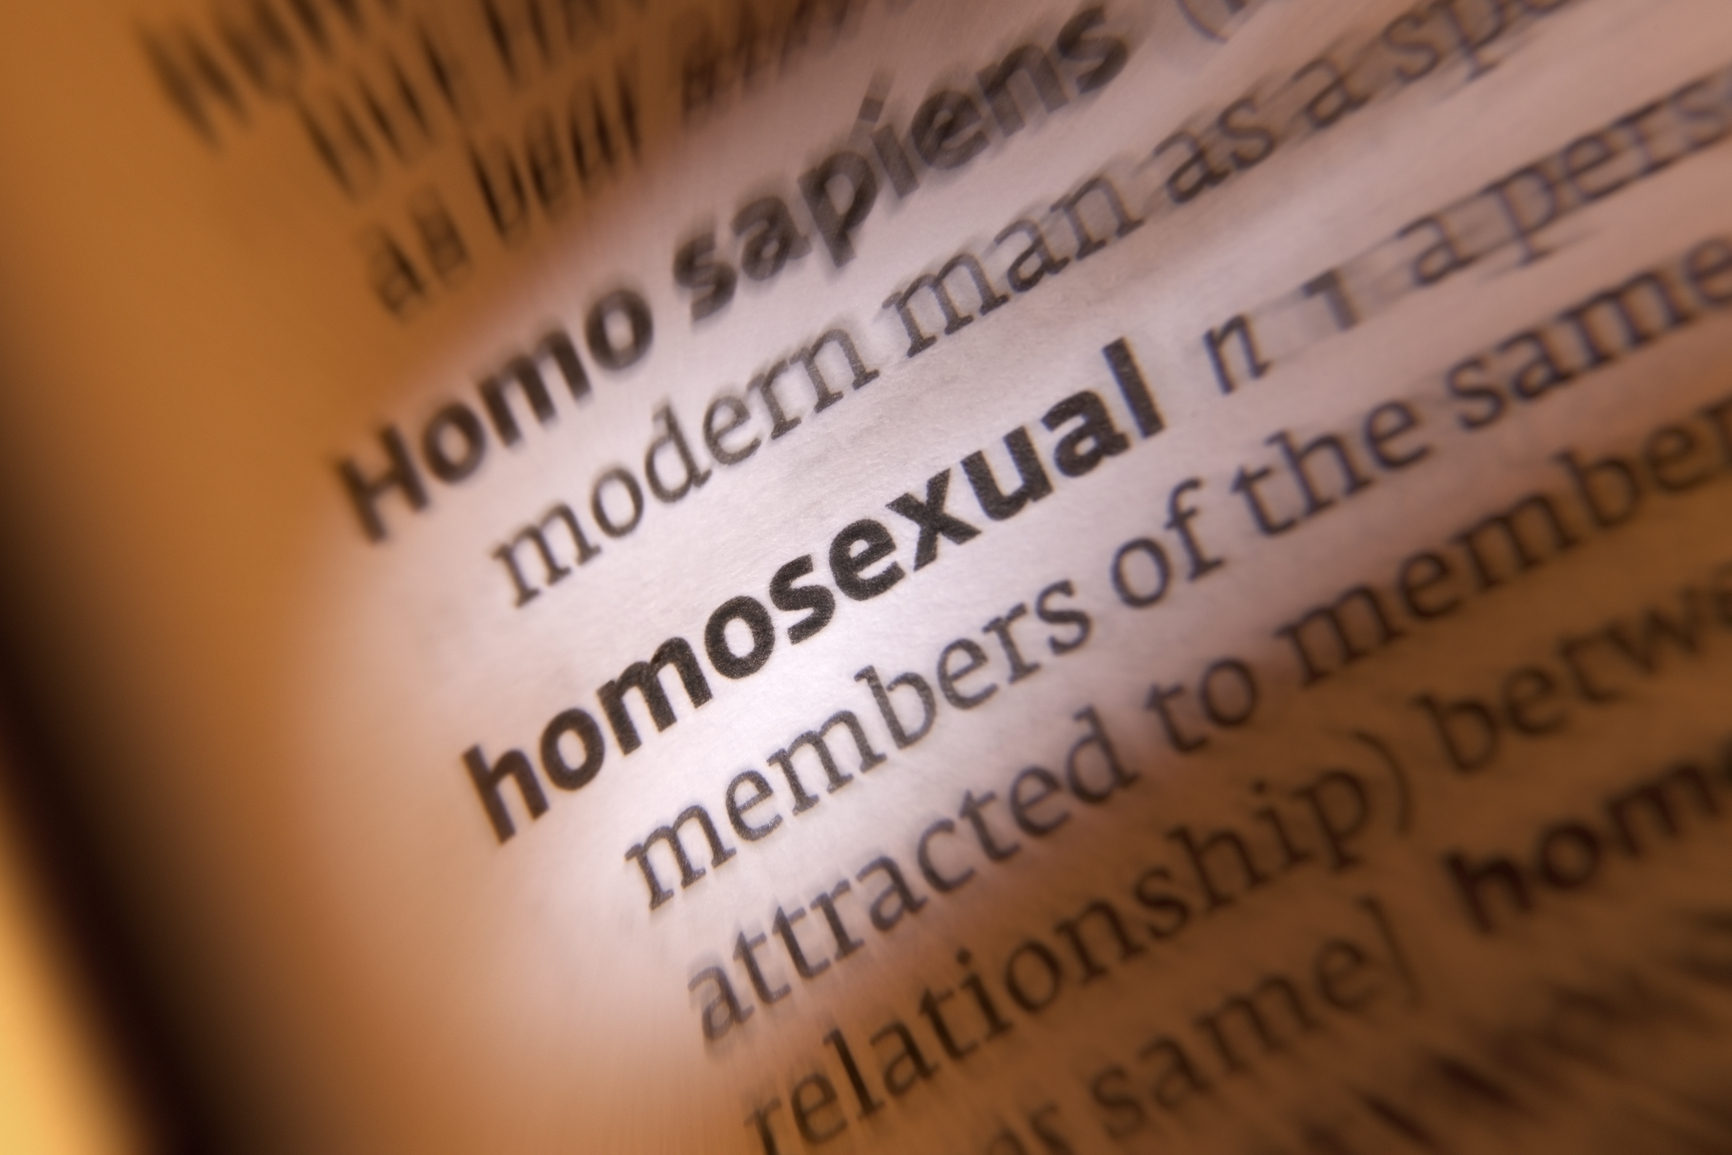 Homosexual - Dictionary Definition